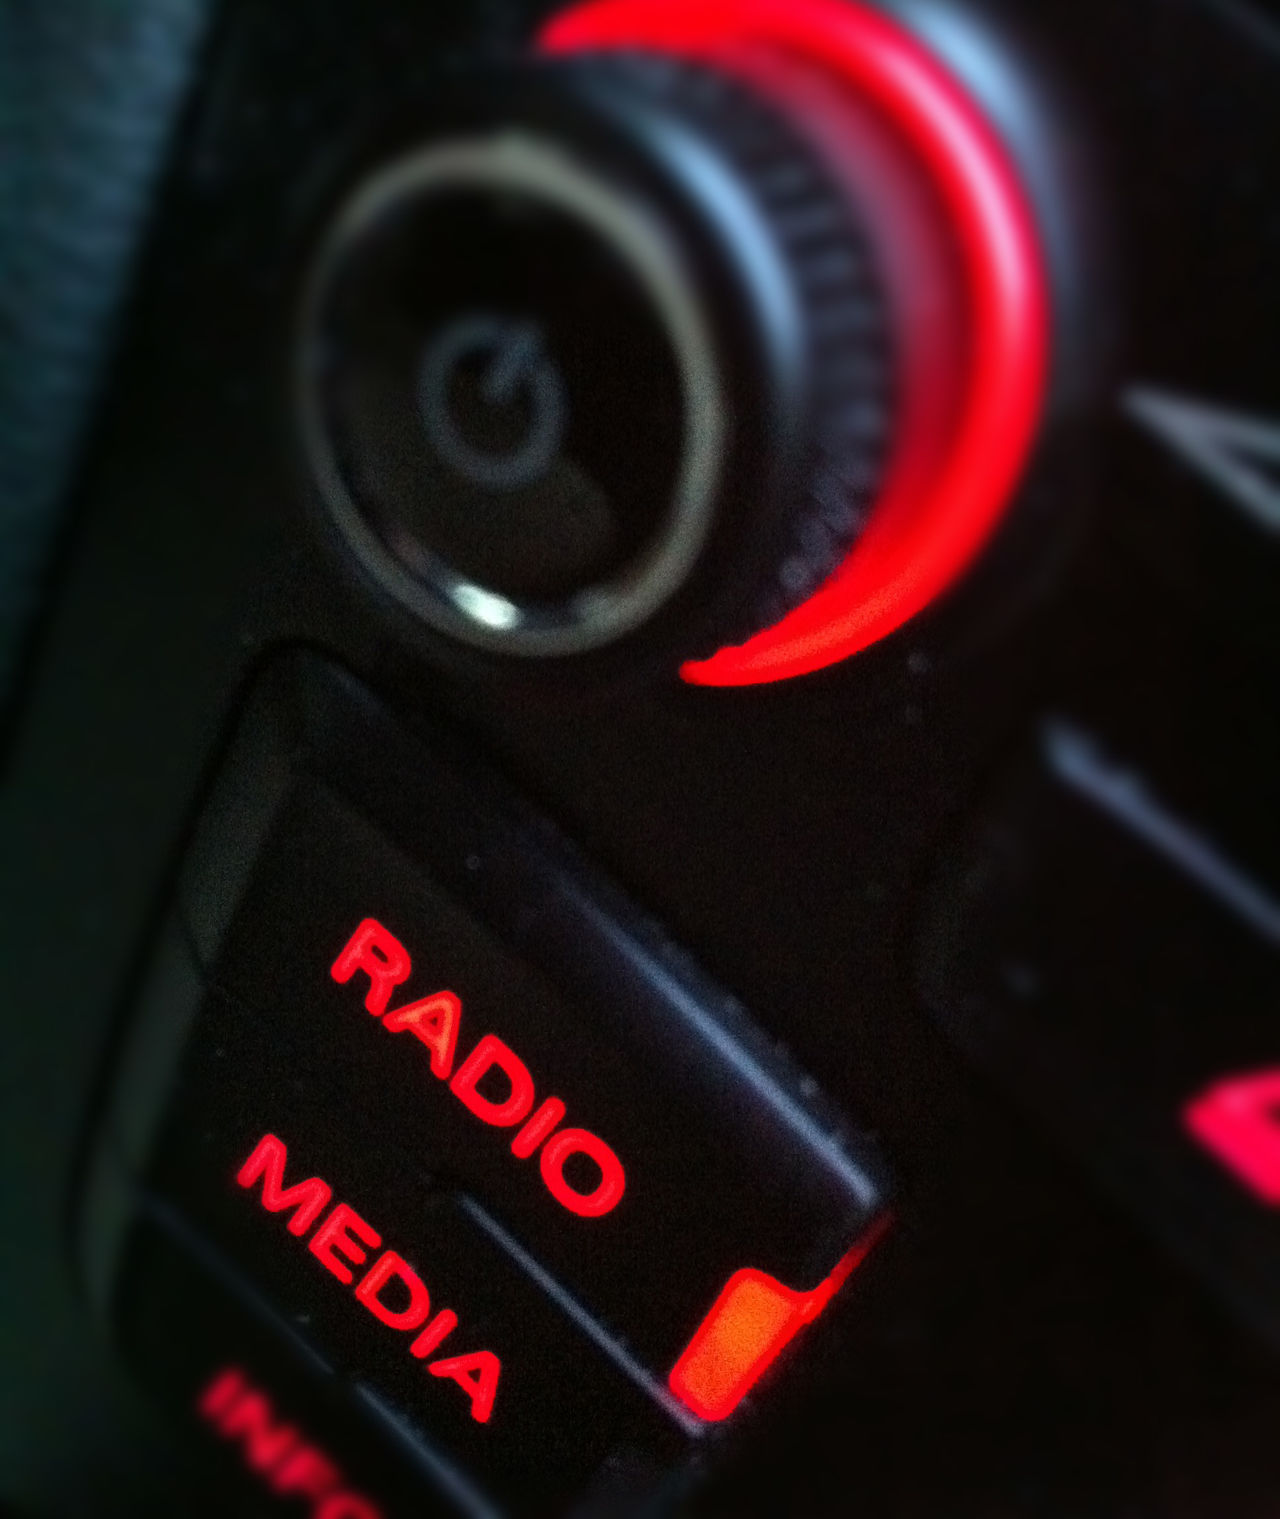 Mai senza radio Close-up Connection Detail Focus On Foreground Music Music Is My Life Push Button Radio Radio Station Red Still Life